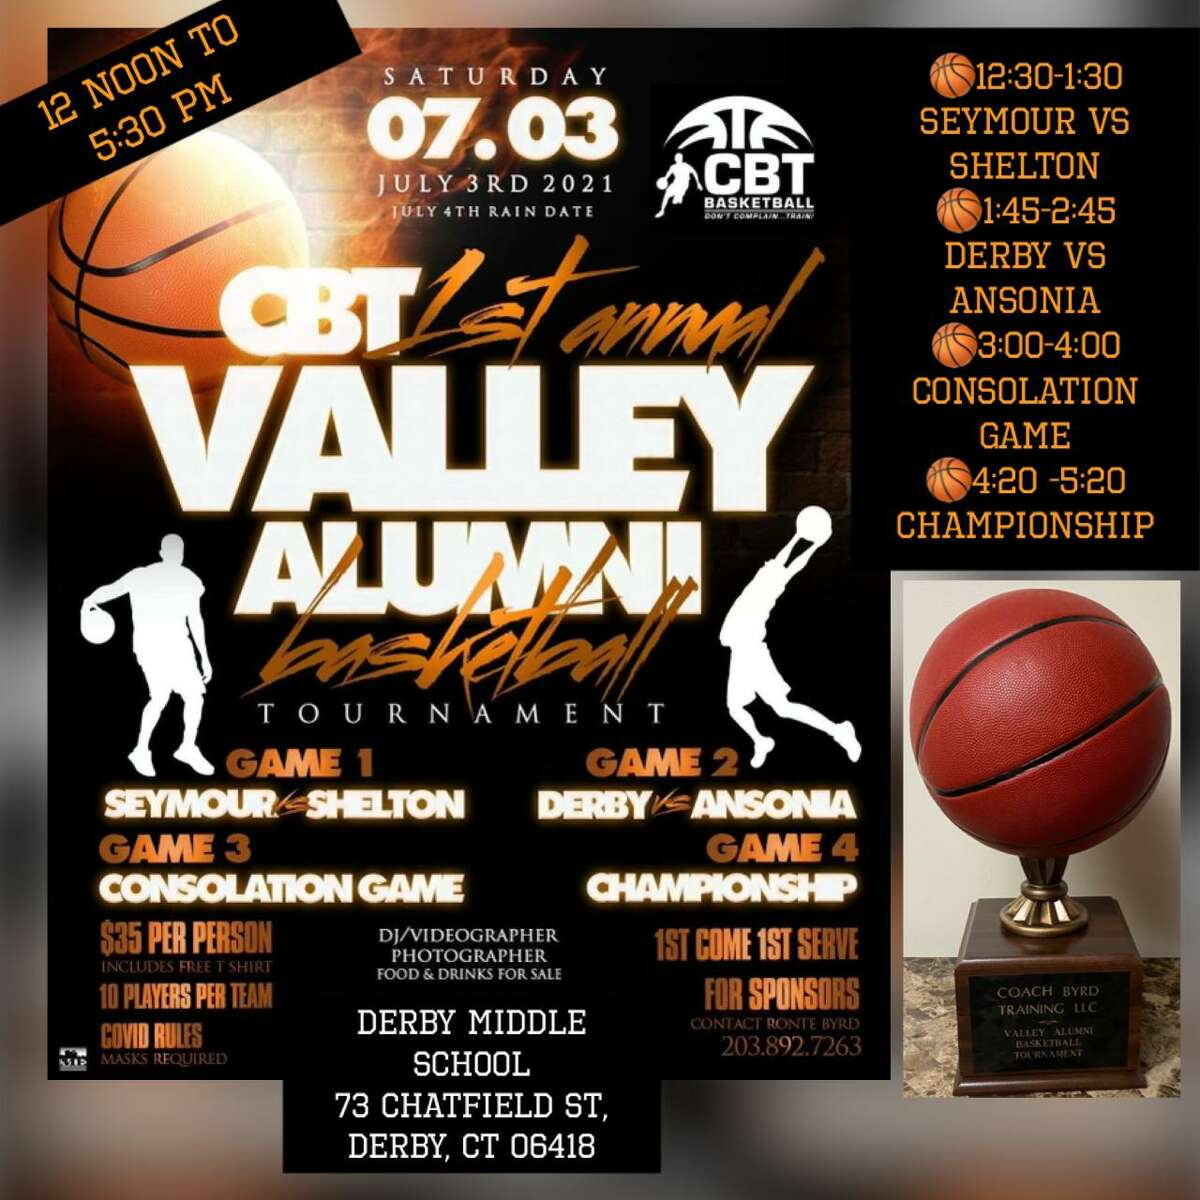 Ronté Byrd has organized the first Valley alumni basketball tournament to be held Saturday, June 3, 2021, and feature teams from Shelton, Seymour, Derby and Ansonia.